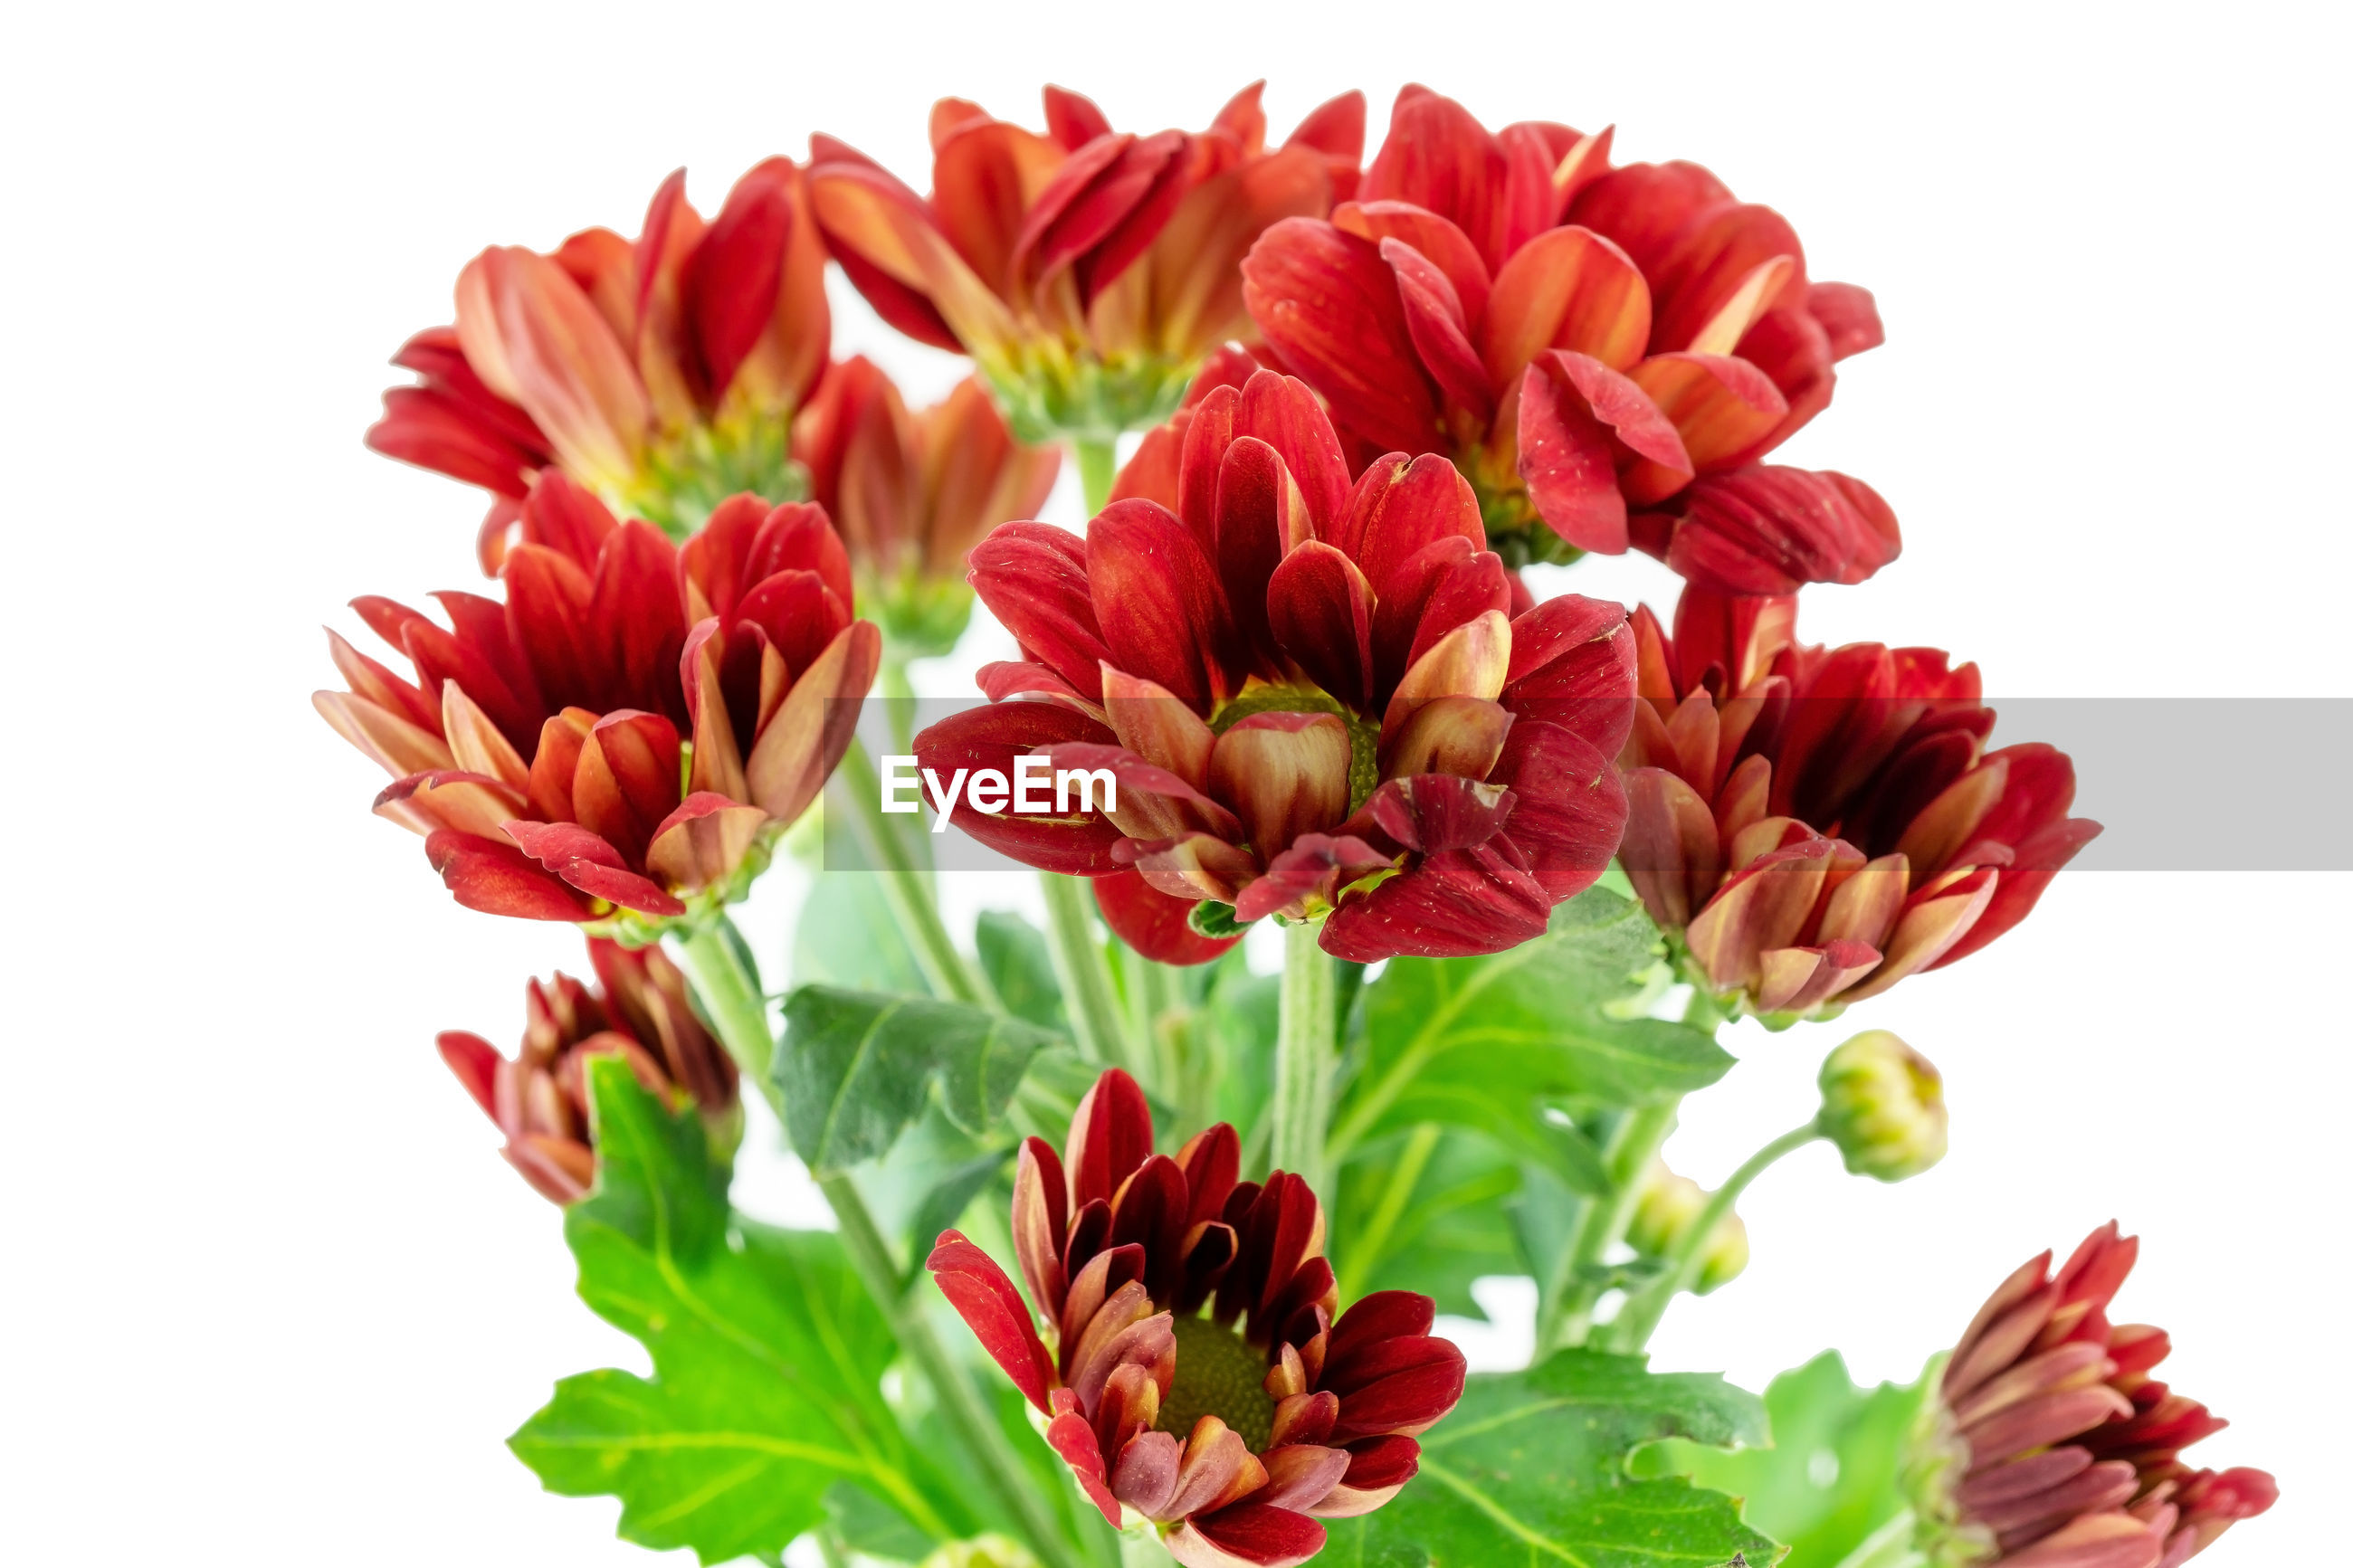 CLOSE-UP OF RED FLOWERS OVER WHITE BACKGROUND